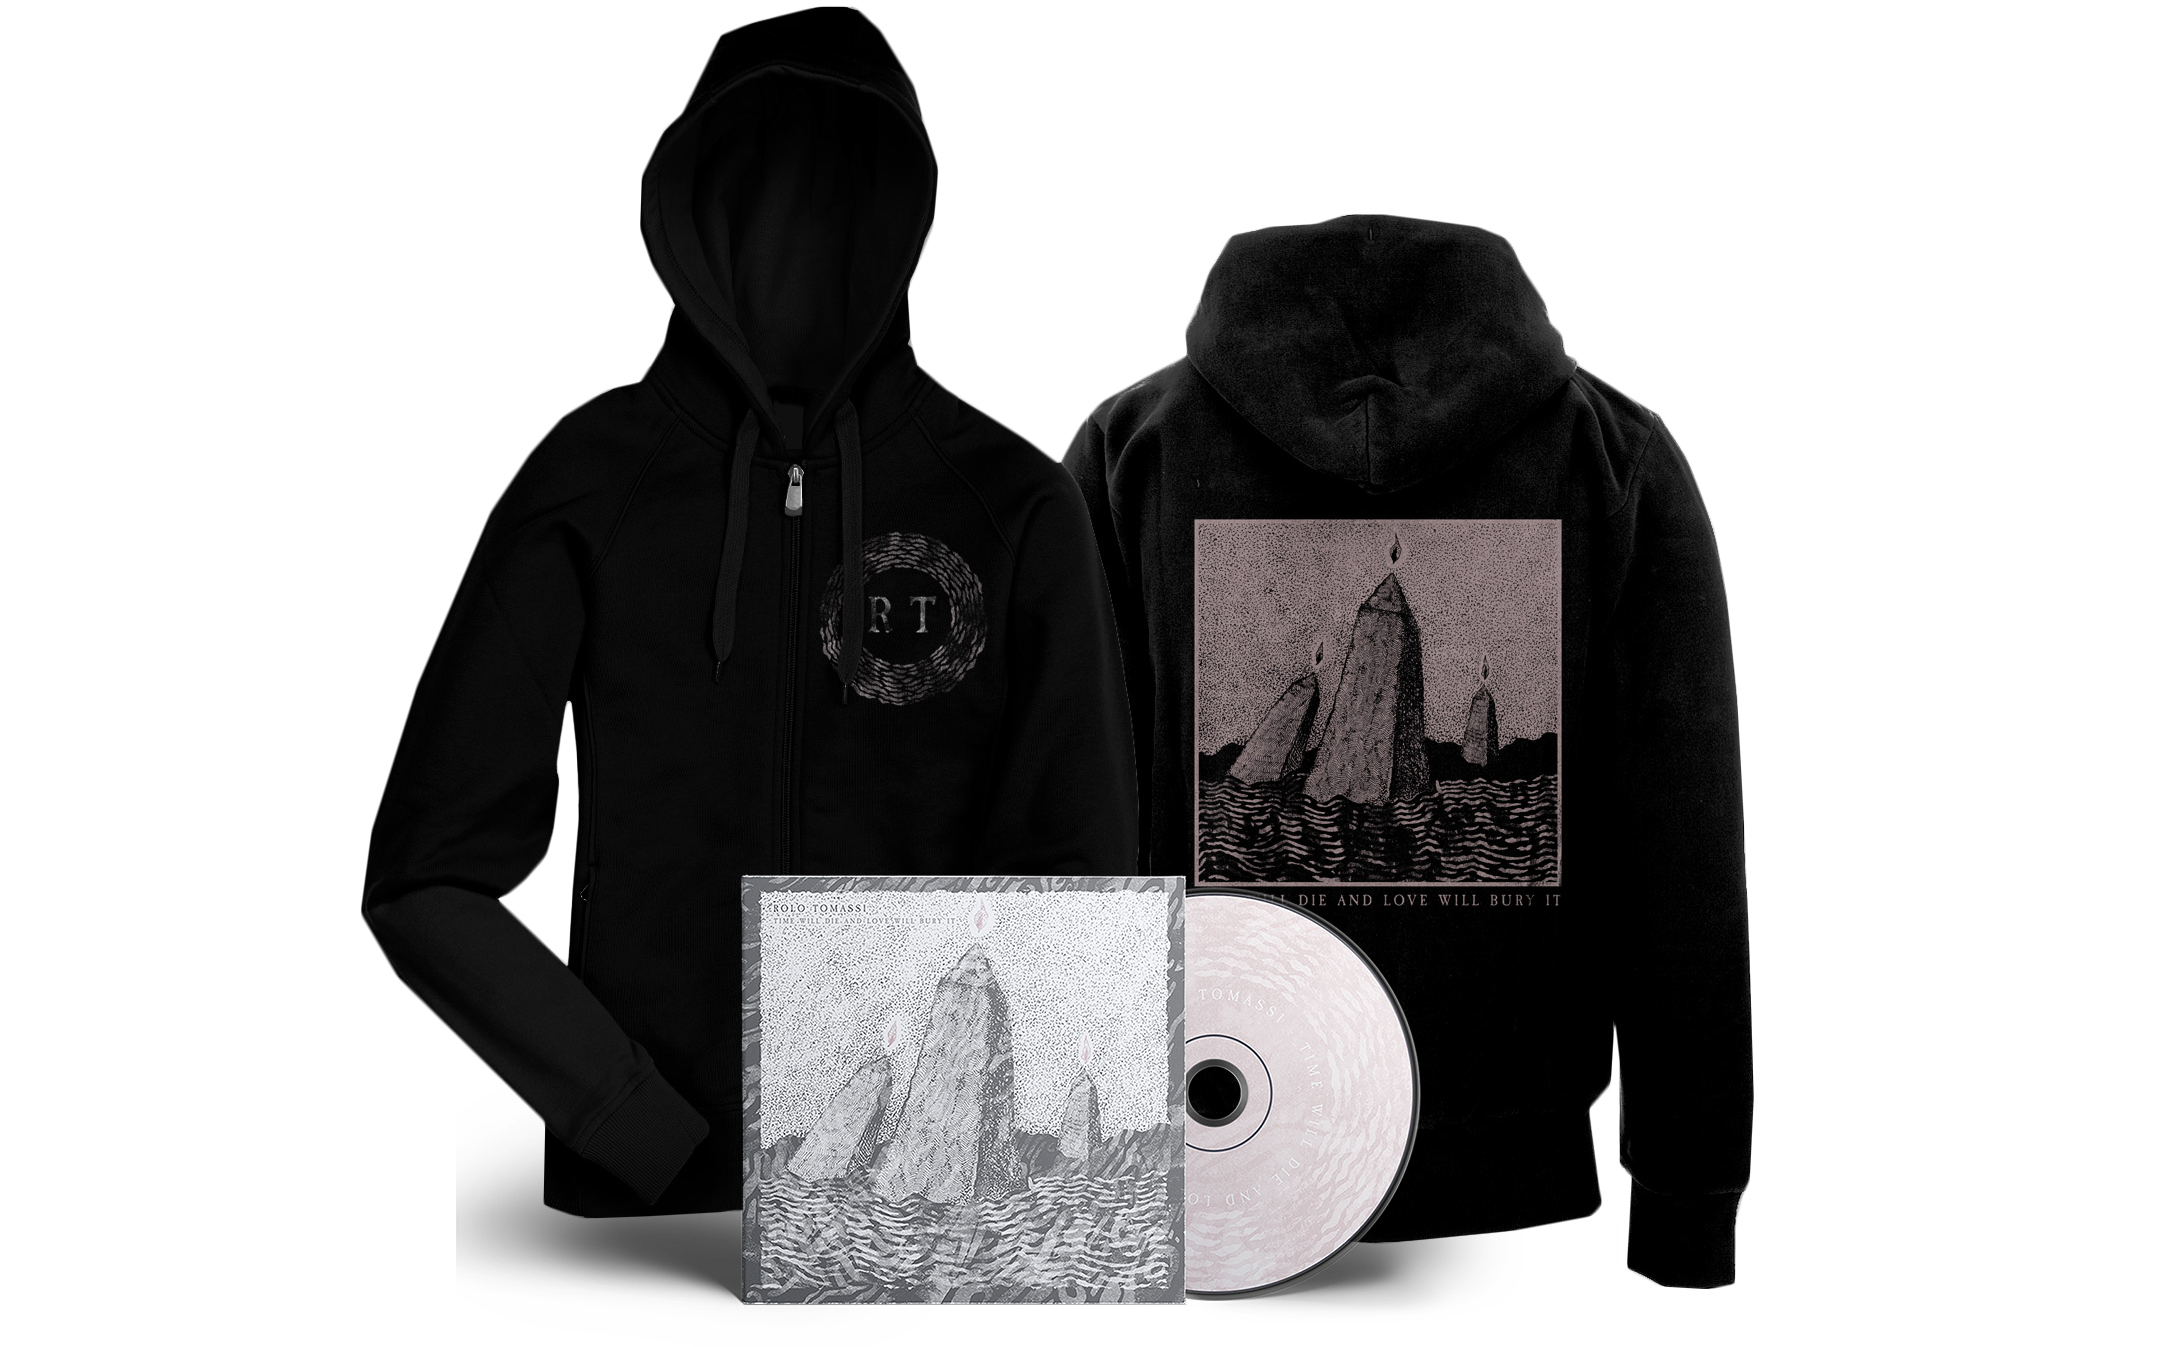 Rolo Tomassi - '...Love Will Bury It' CD + hoodie